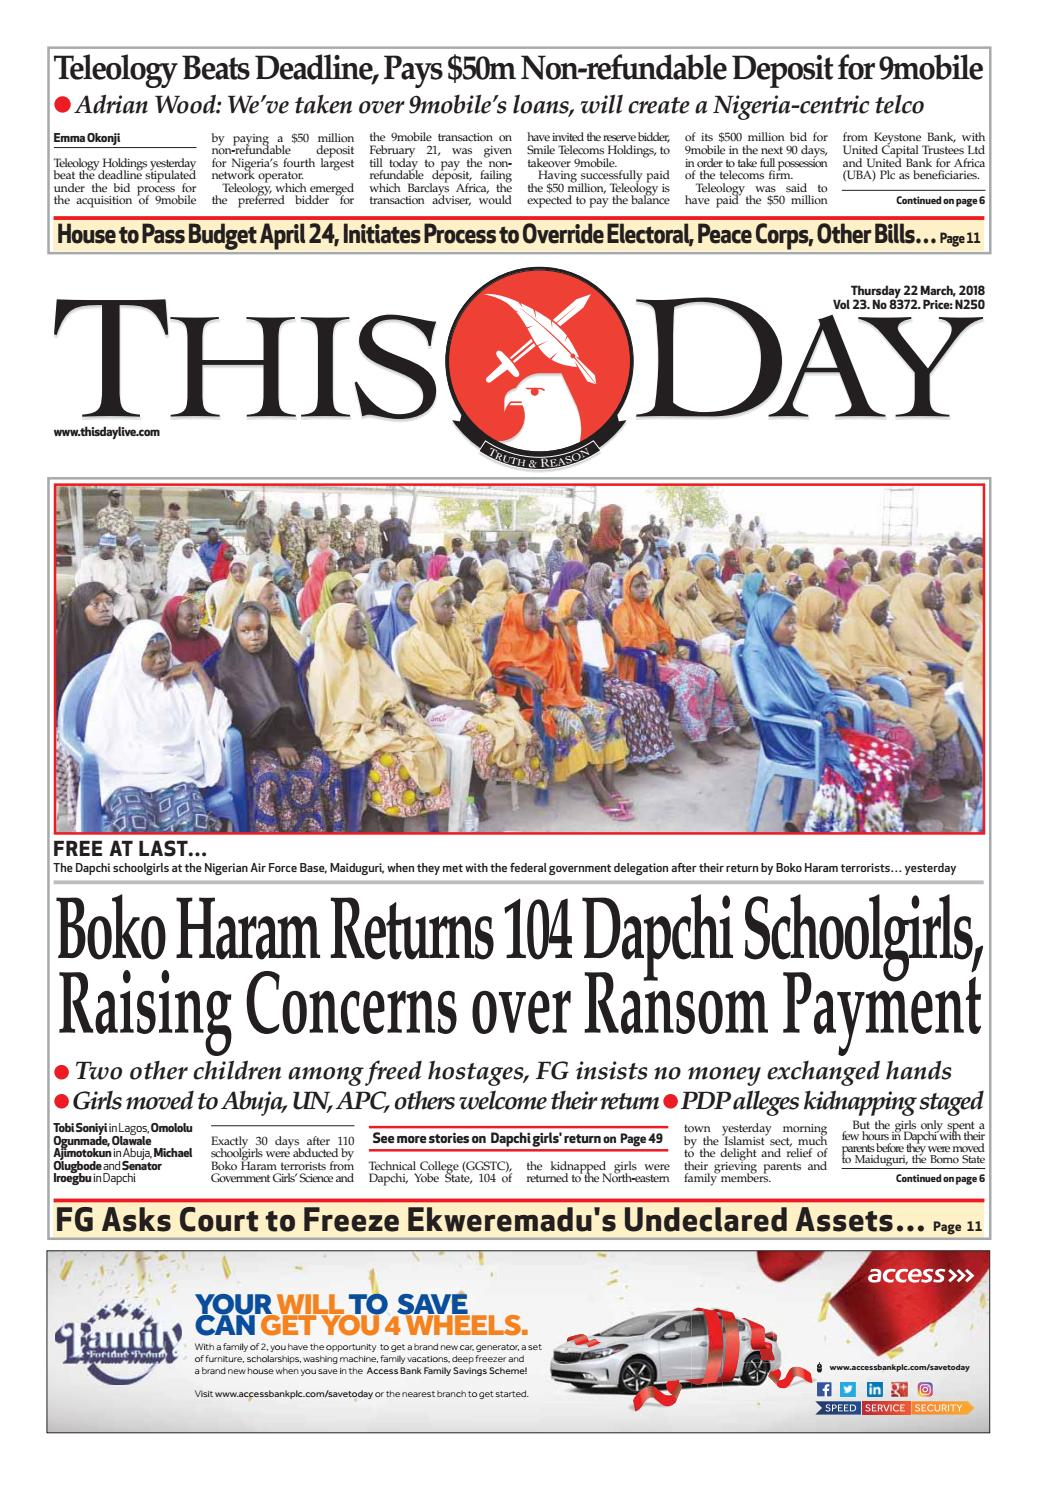 Thursday 22nd march 2018 by thisday newspapers ltd issuu fandeluxe Choice Image